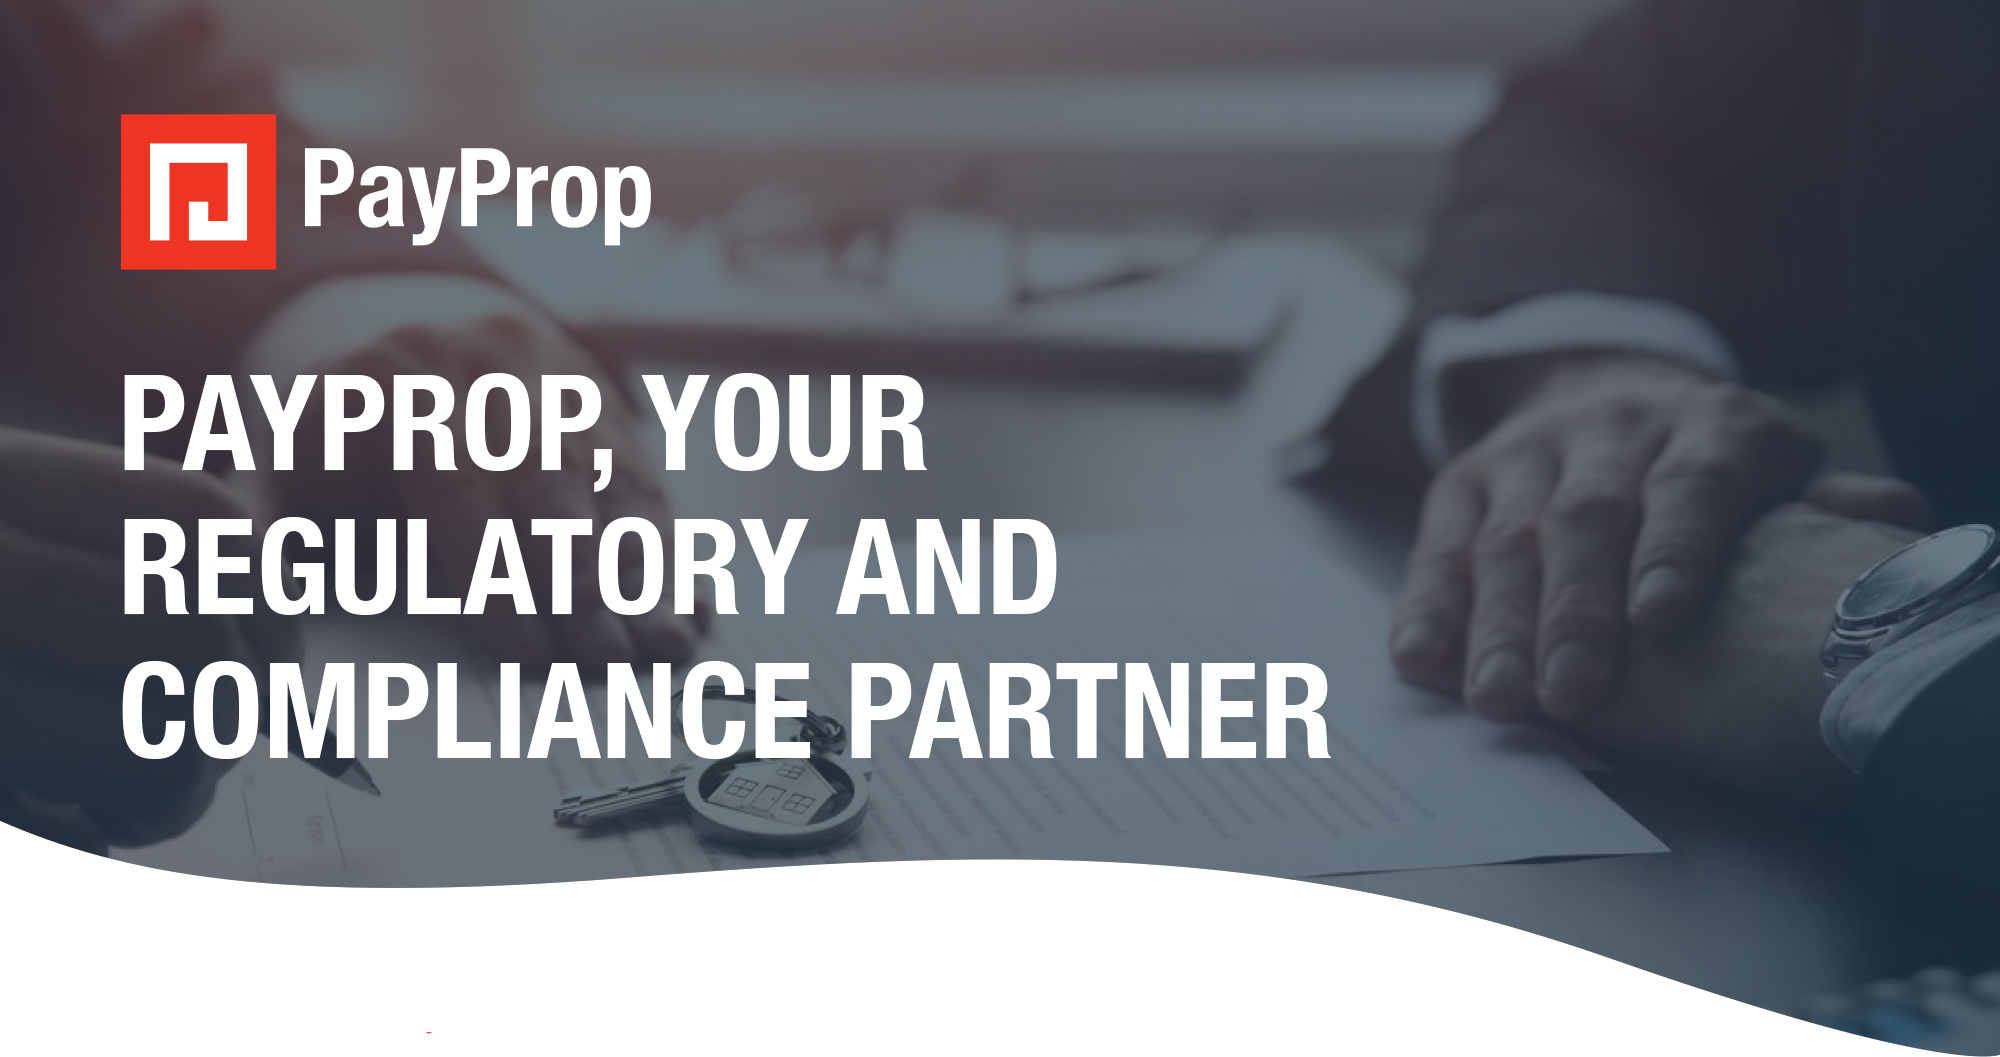 PayProp, your regulatory and compliance partner